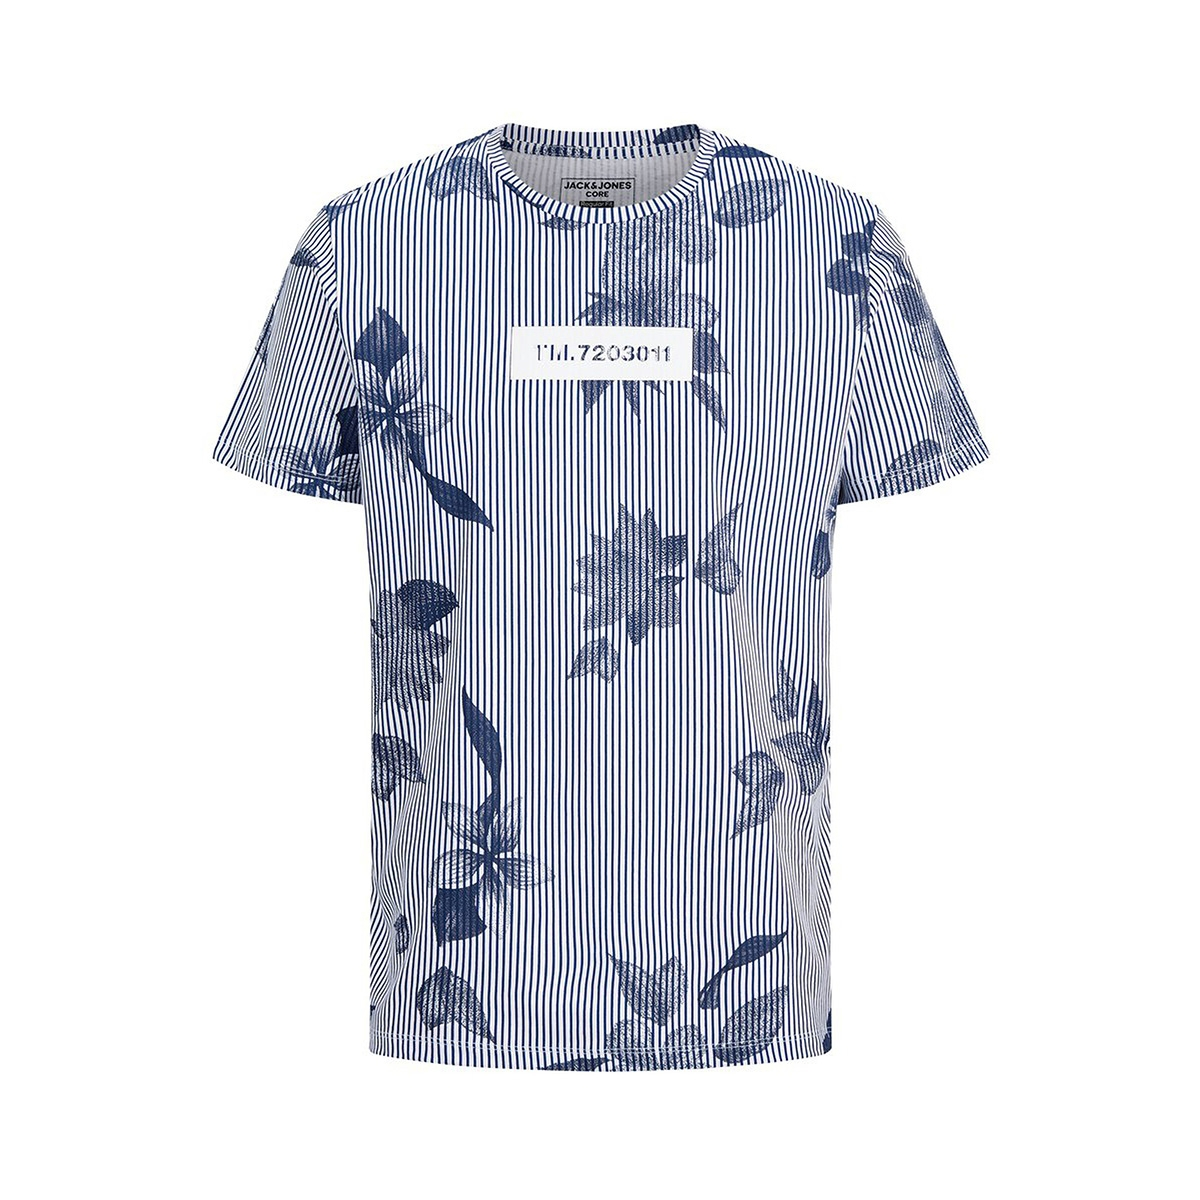 jcoflower tee ss crew neck 12173006 jack & jones t-shirt navy peony